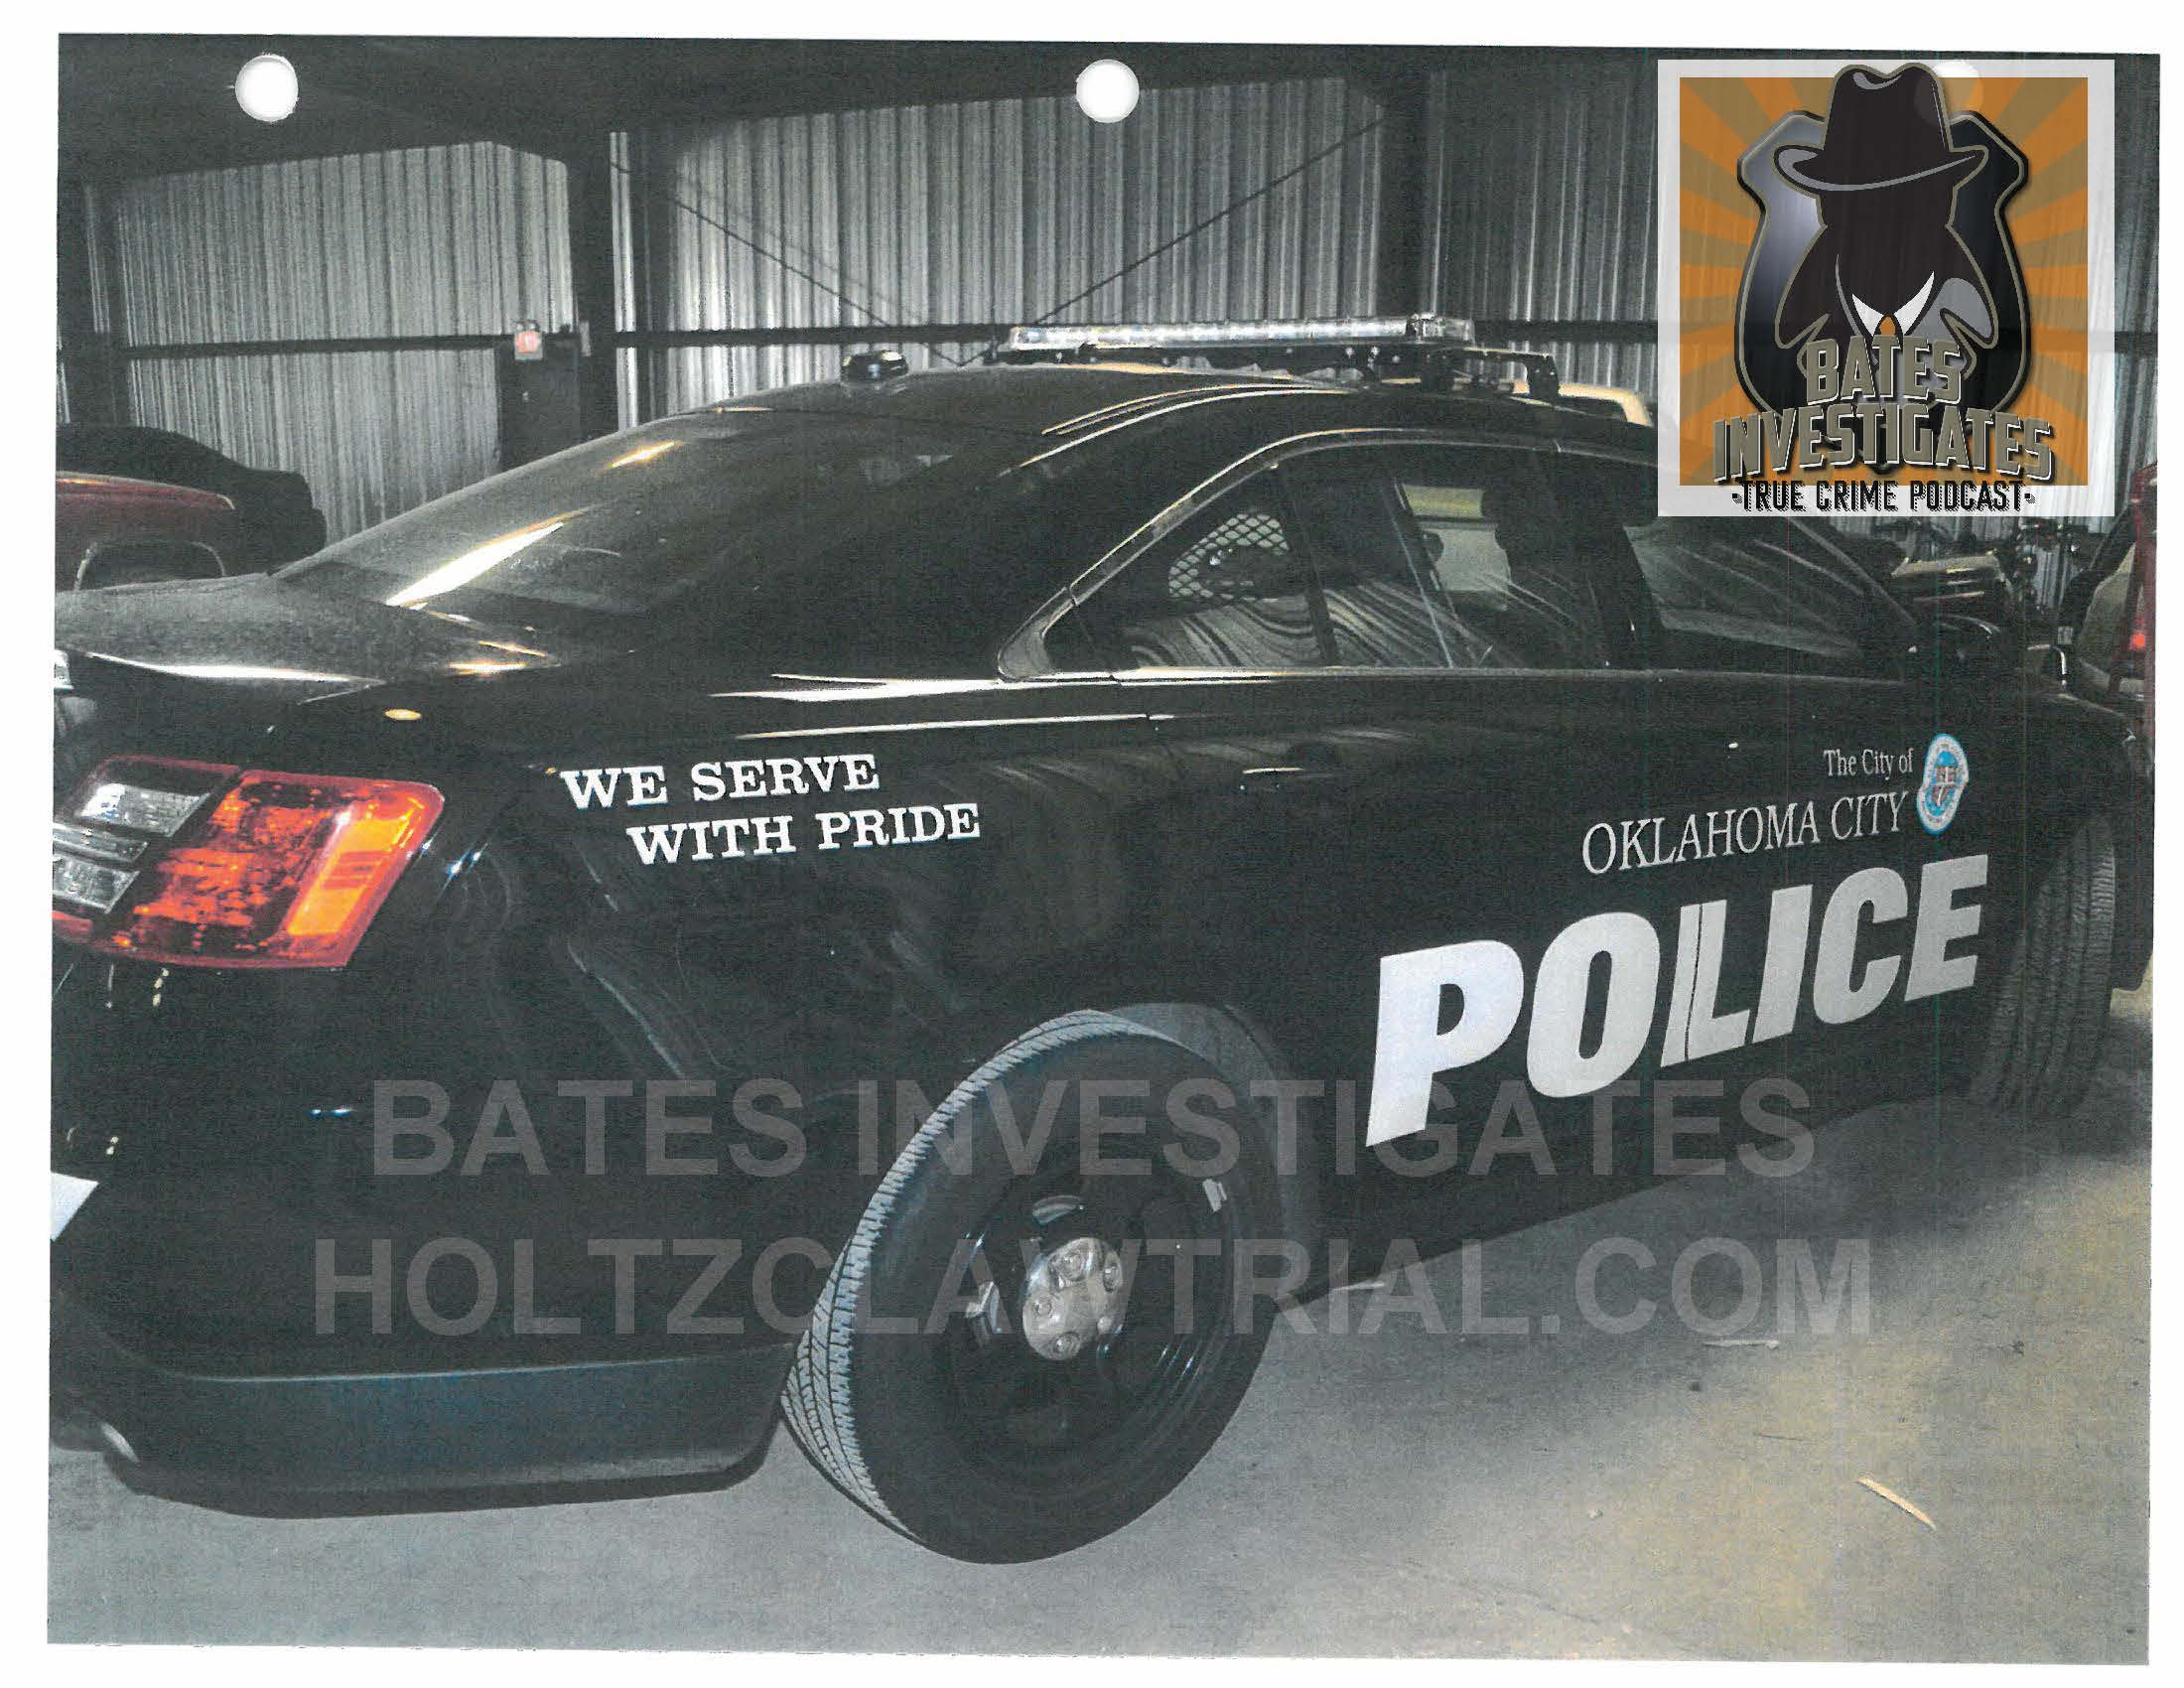 Holtzclaw Daniel - OCPD Patrol Car Photos Watermarked_Page_02.jpg